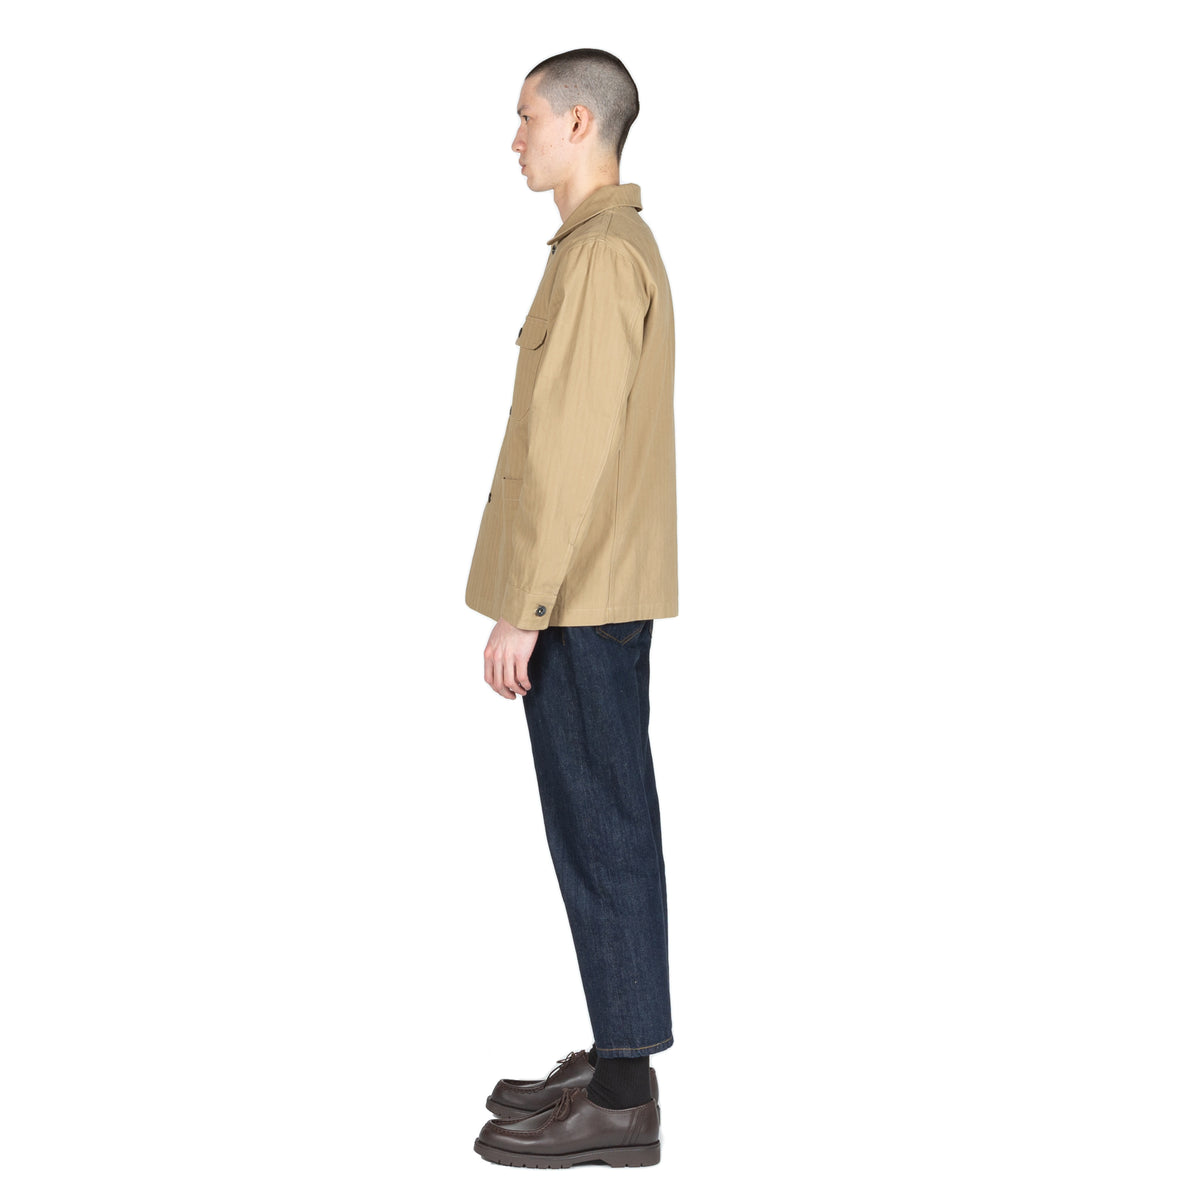 Native North Herringbone Utility Jacket Outerwear Khaki